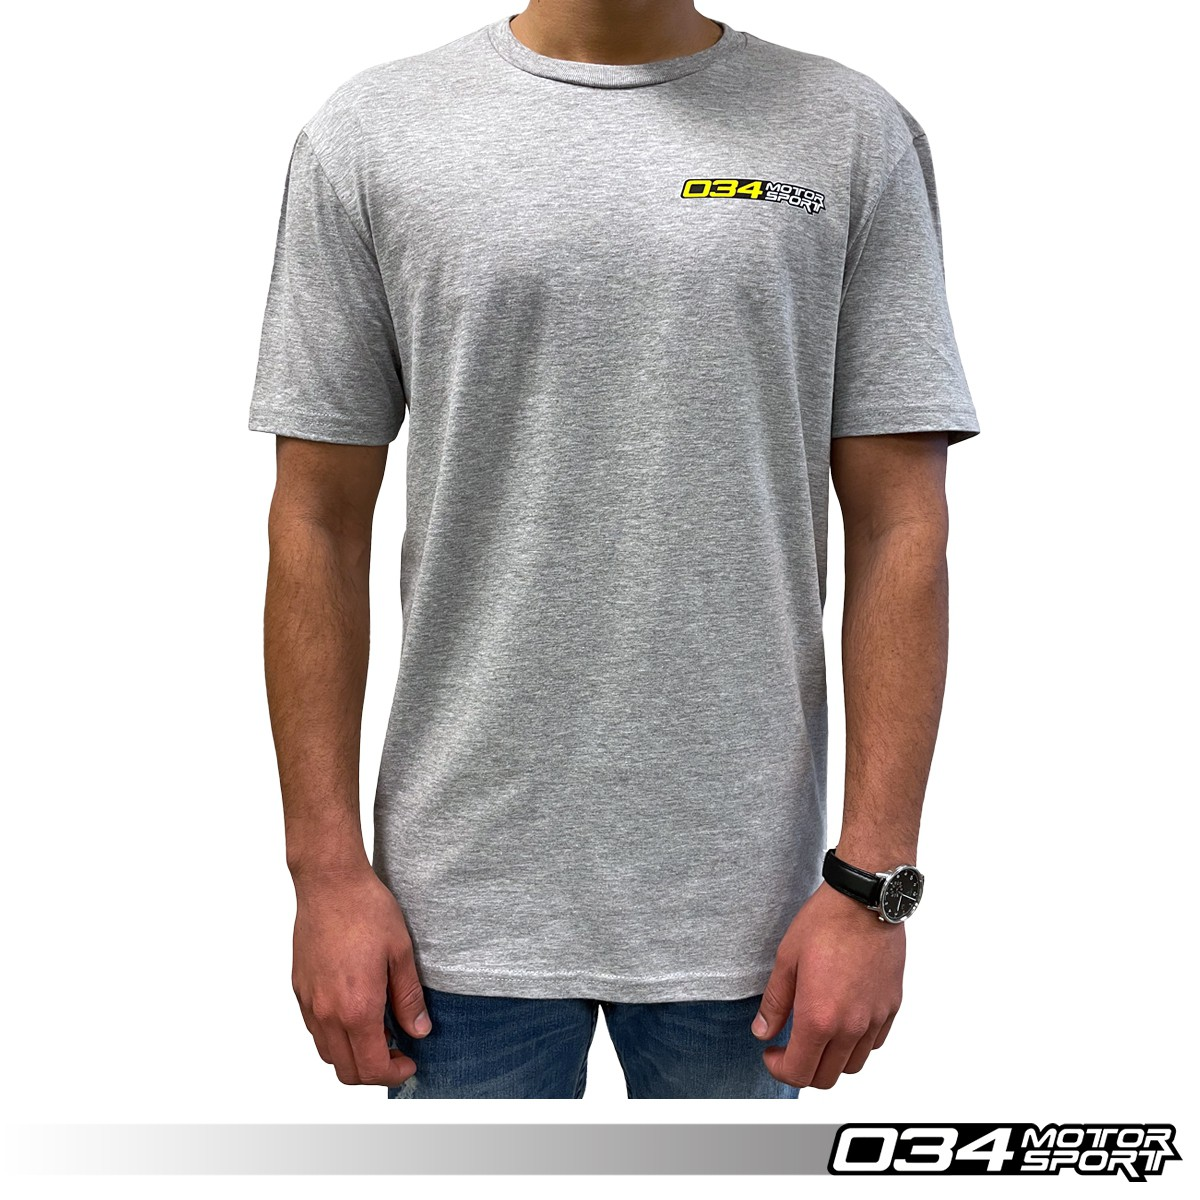 "T-Shirt, ""034Motorsport"", Gray 034-A01-1020"